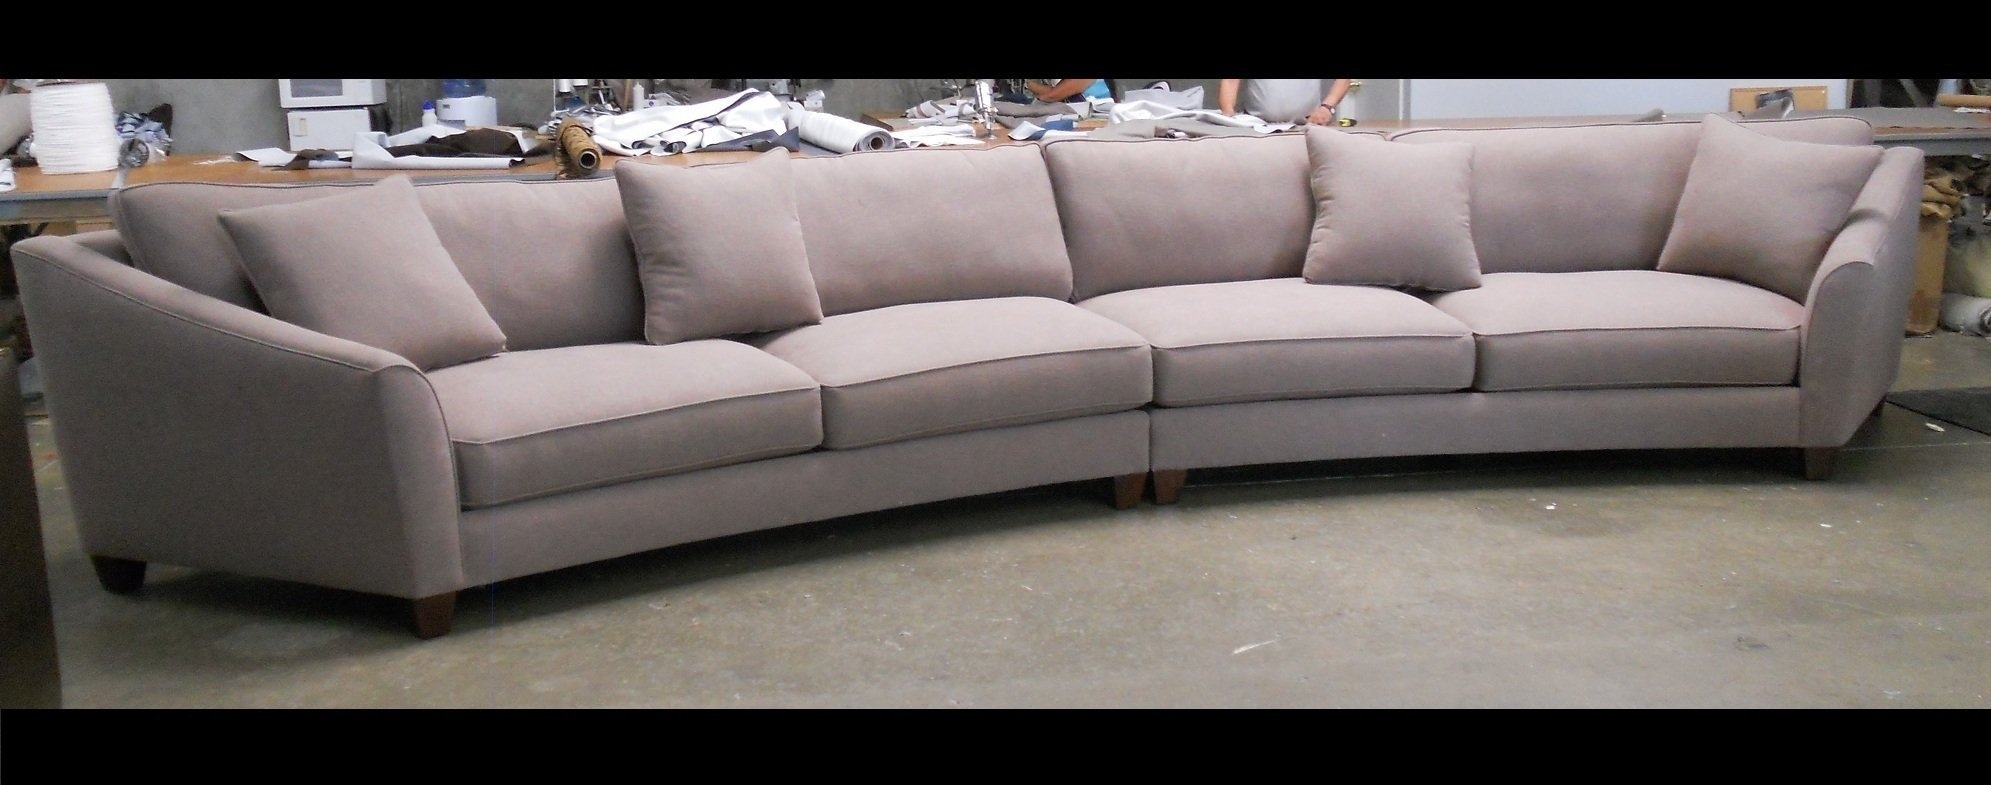 Furniture : 7 Ft Sectional Sofa Sectional Sofa 110 X 110 Quality For Rounded Corner Sectional Sofas (Image 4 of 10)